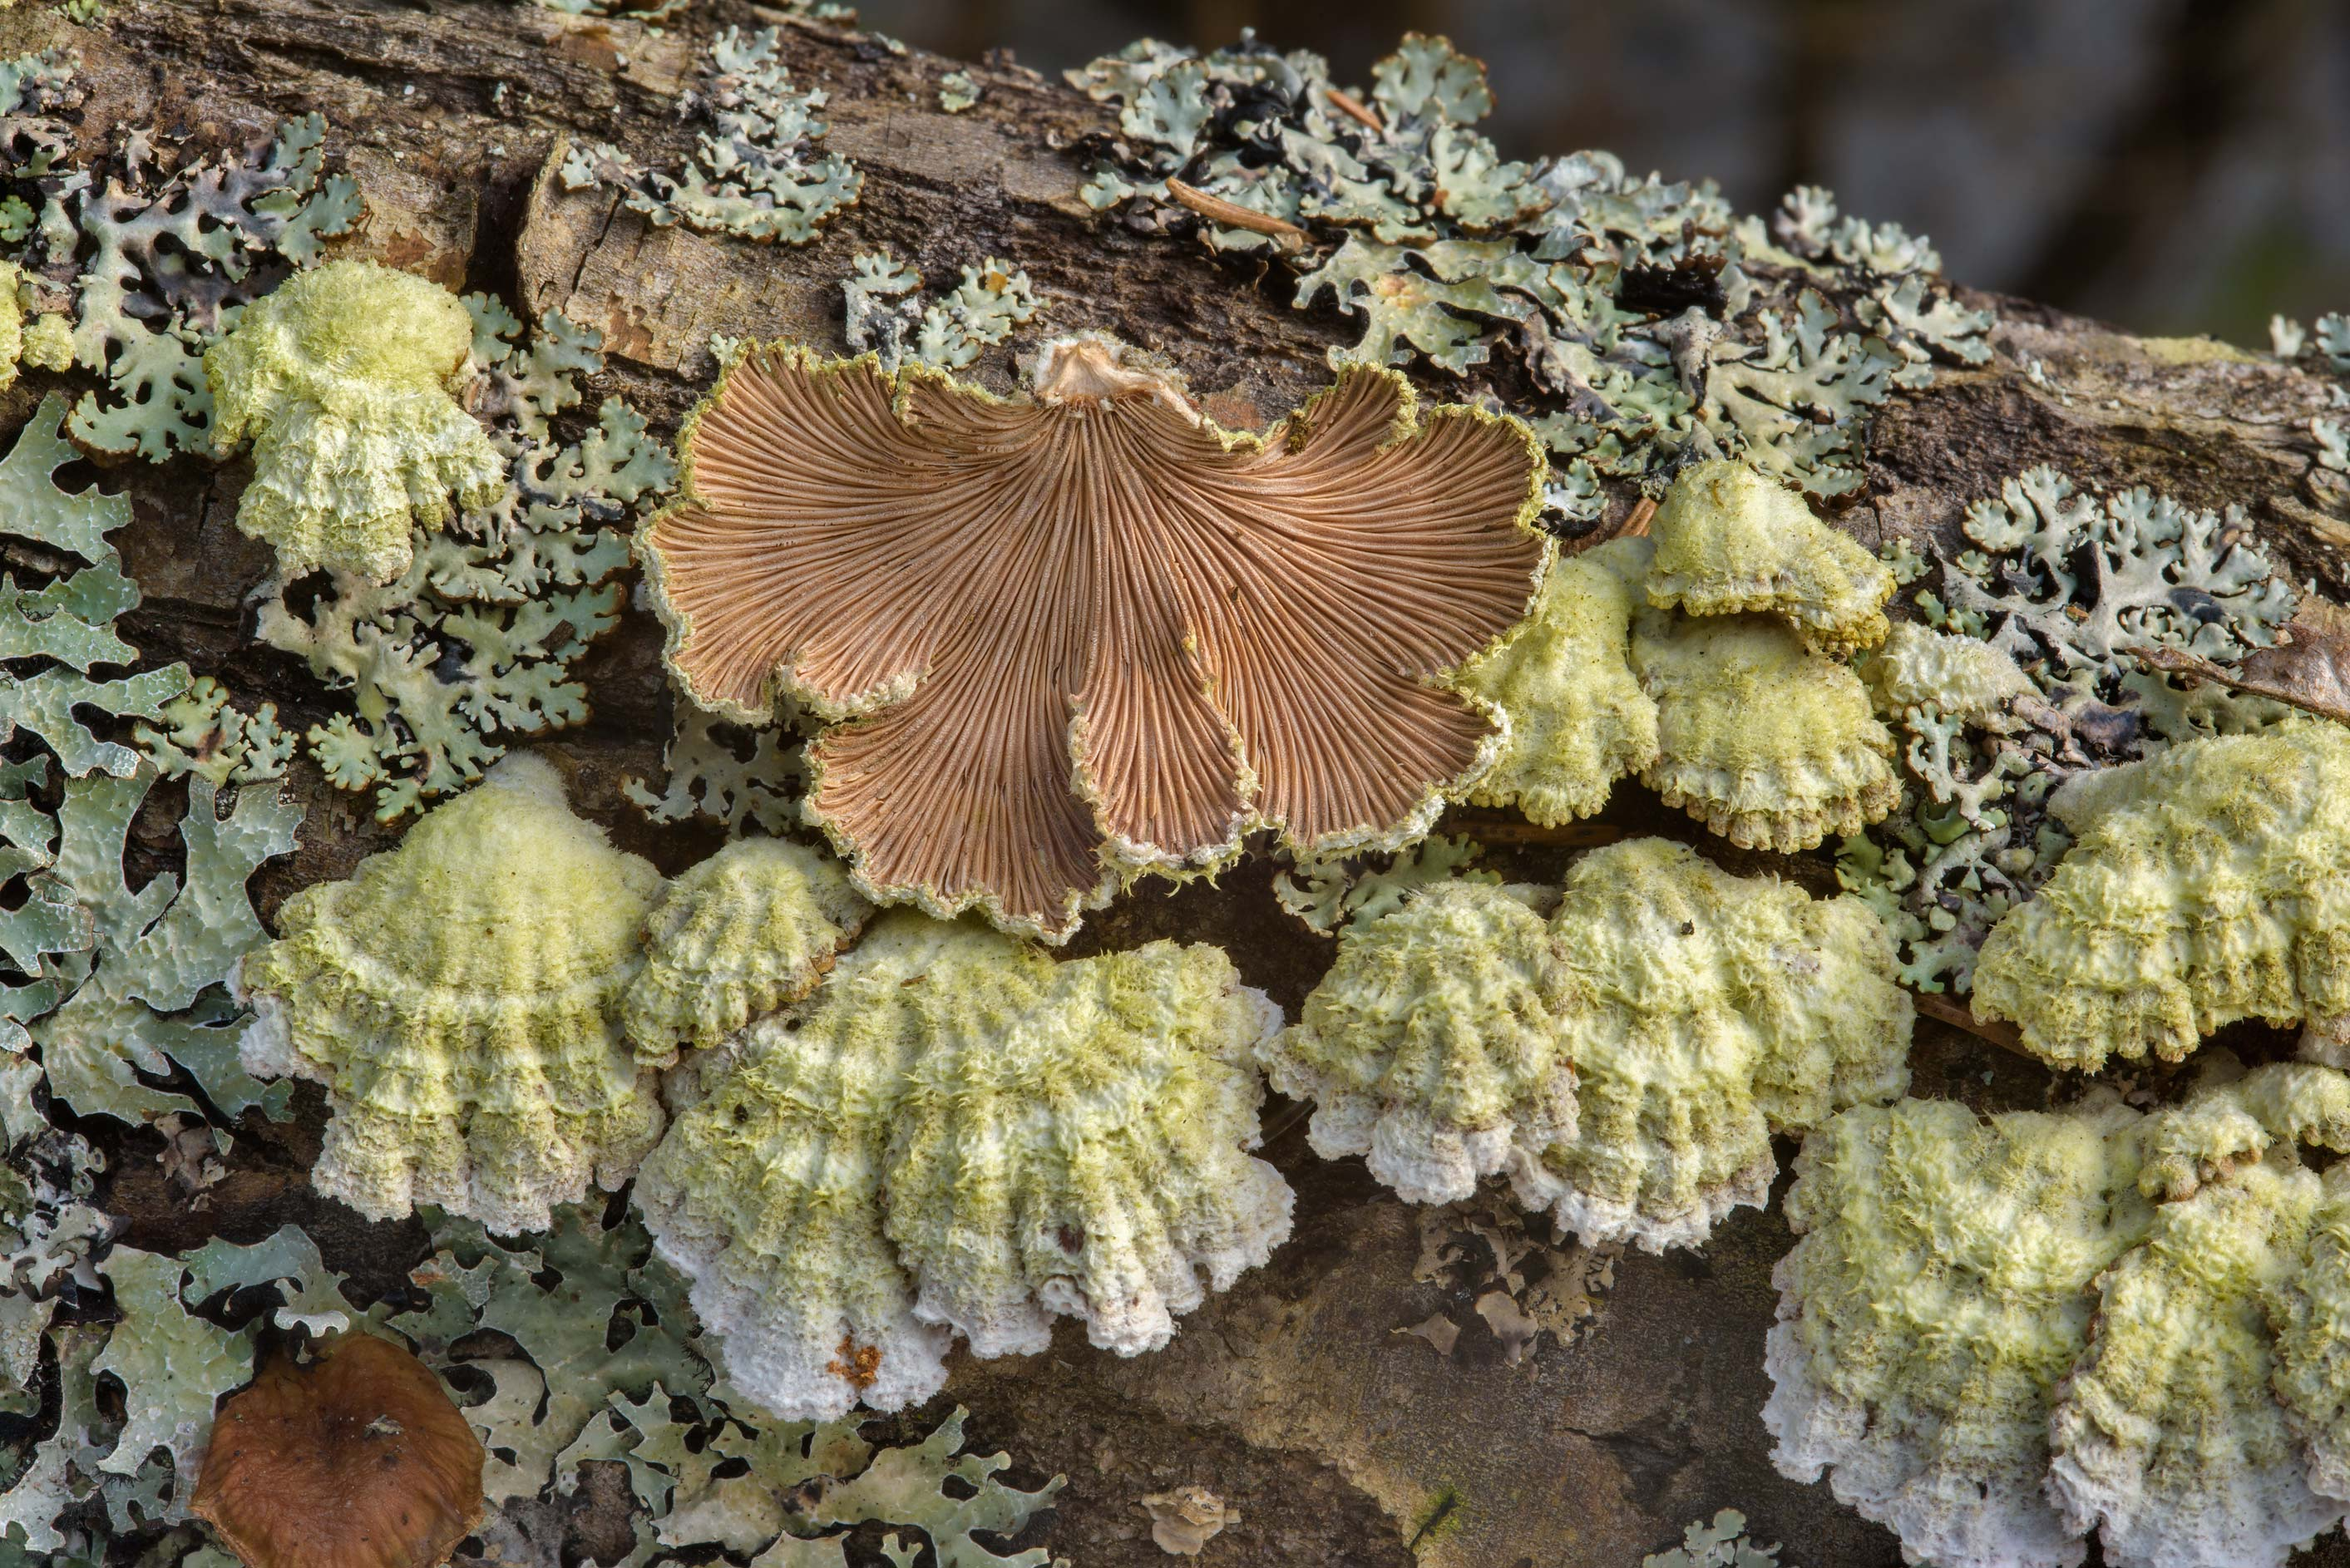 Gills of split gill fungus Schizophyllum commune...north from St.Petersburg. Russia